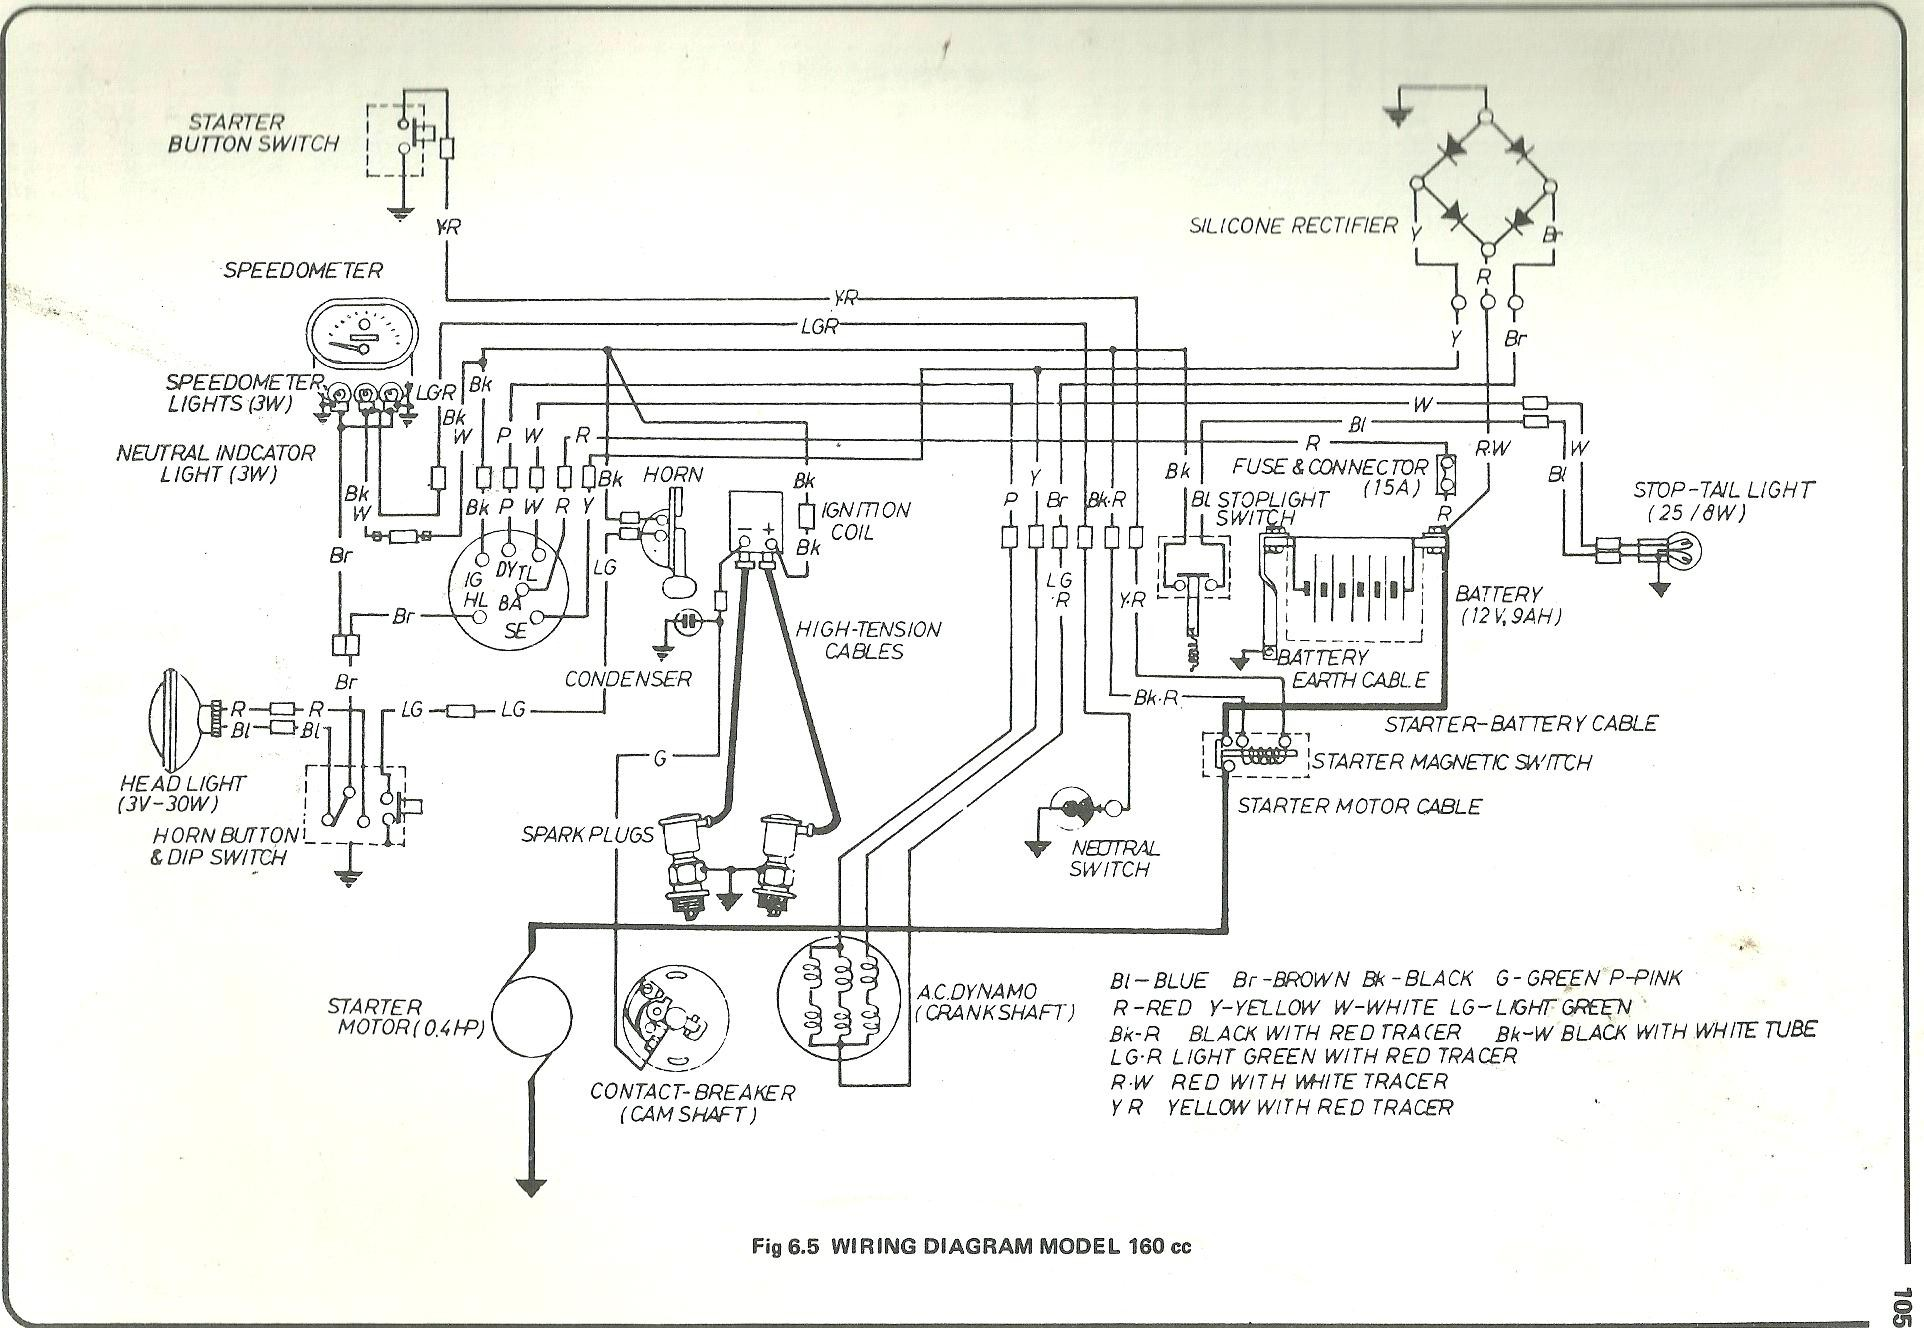 Cb1100 Wiring Diagram Trusted Diagrams Cb50 Electrical Schematic Honda Cb 160 Custom U2022